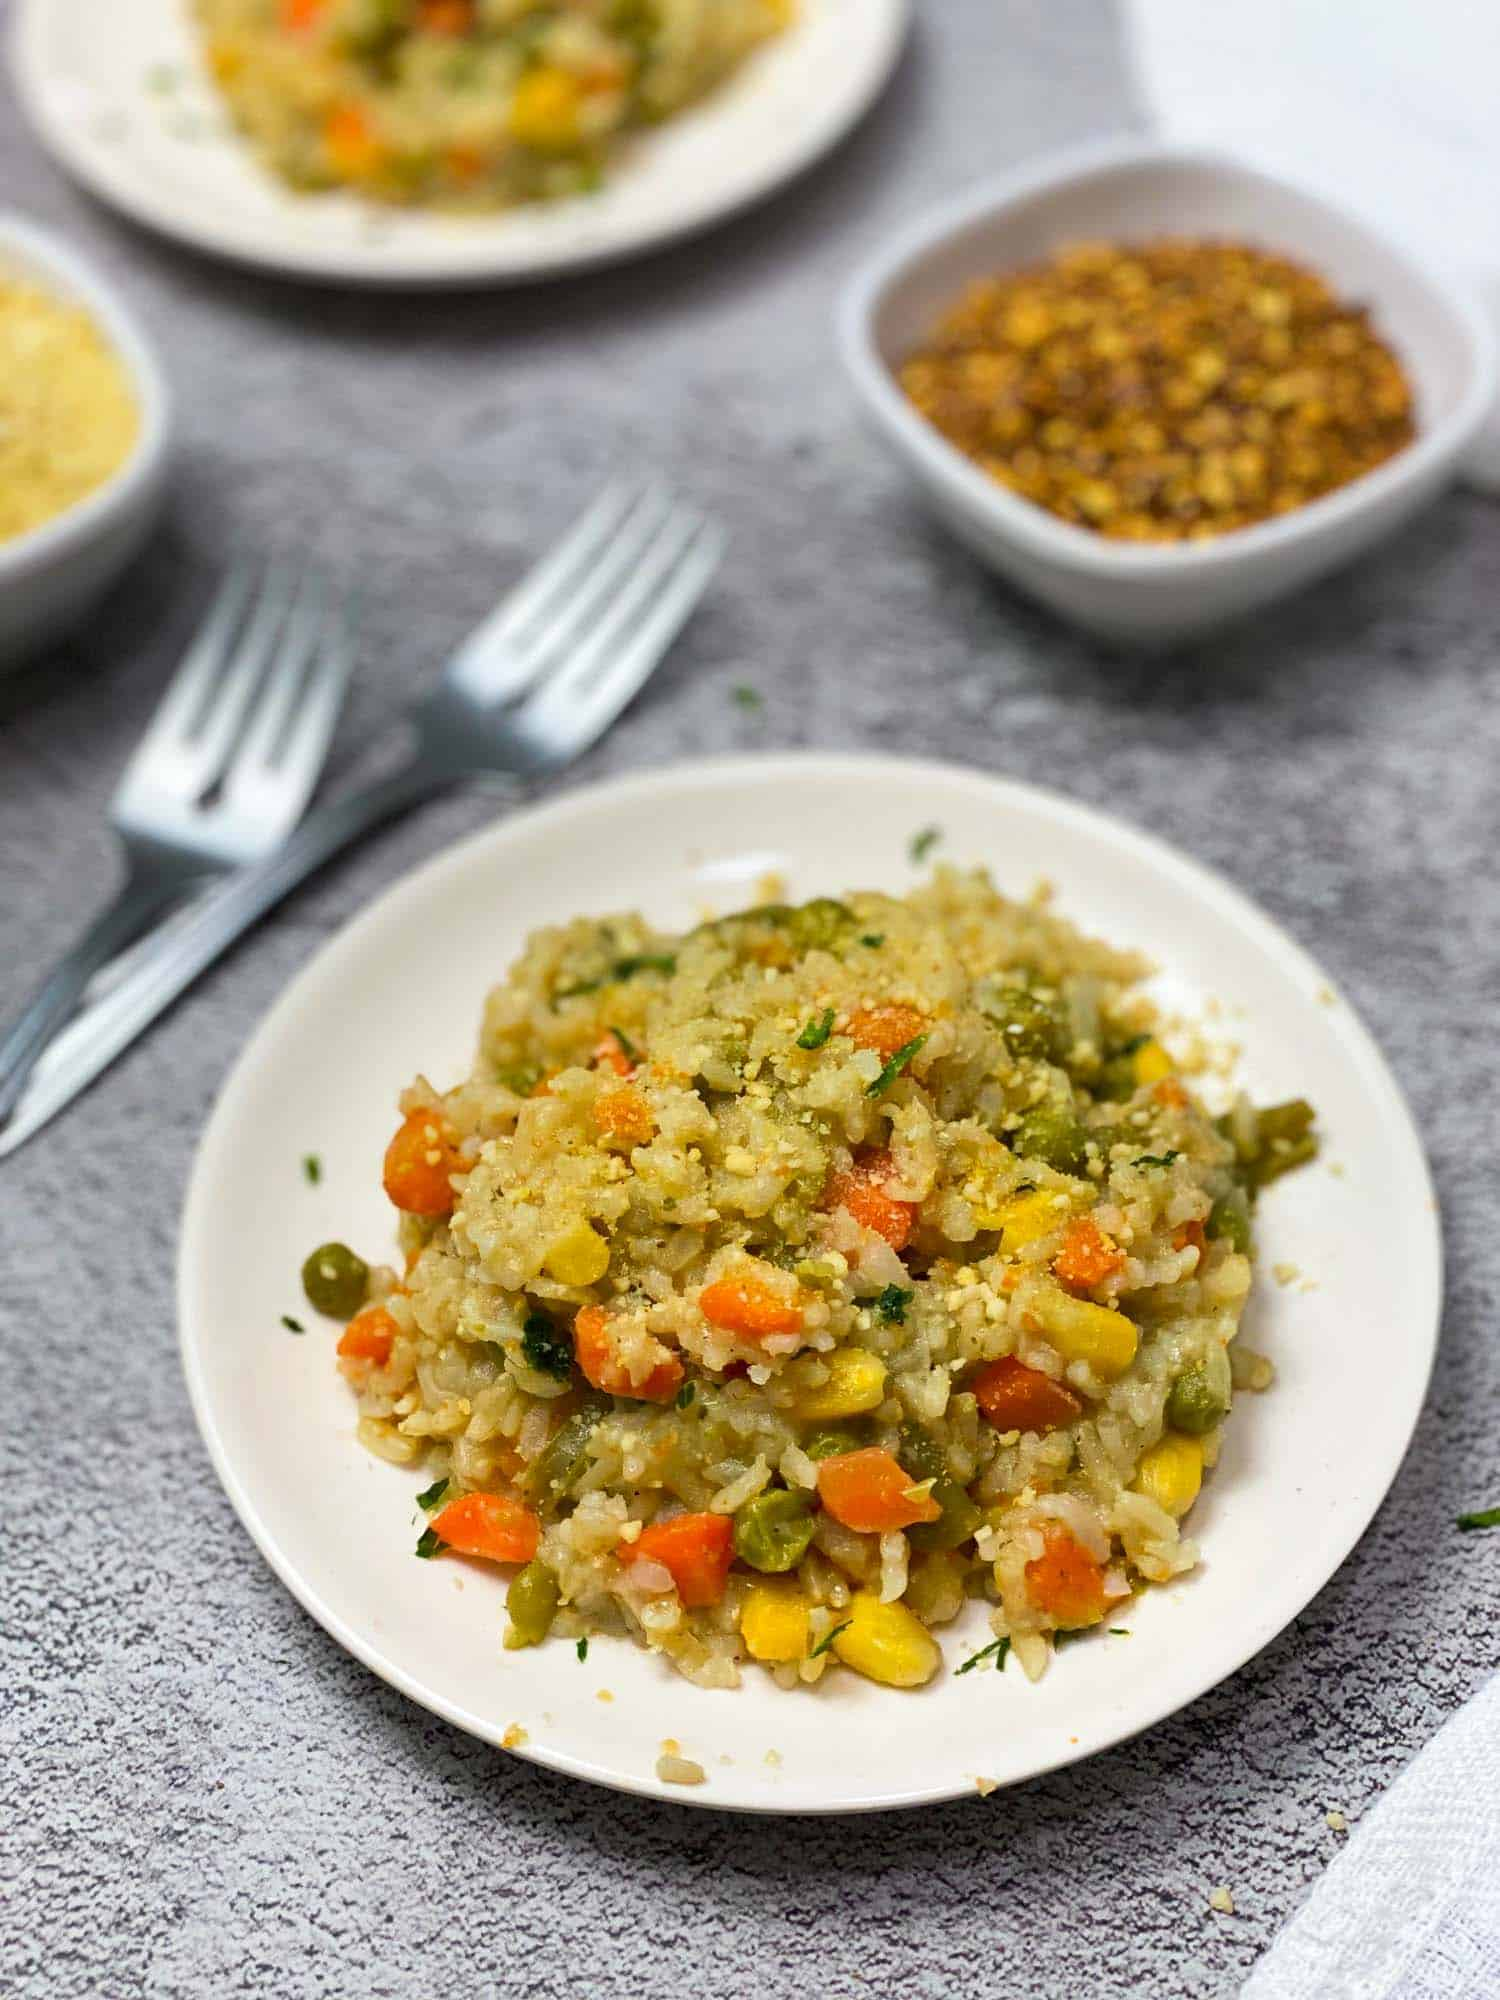 vegan risotto in white plate with mixed vegetables